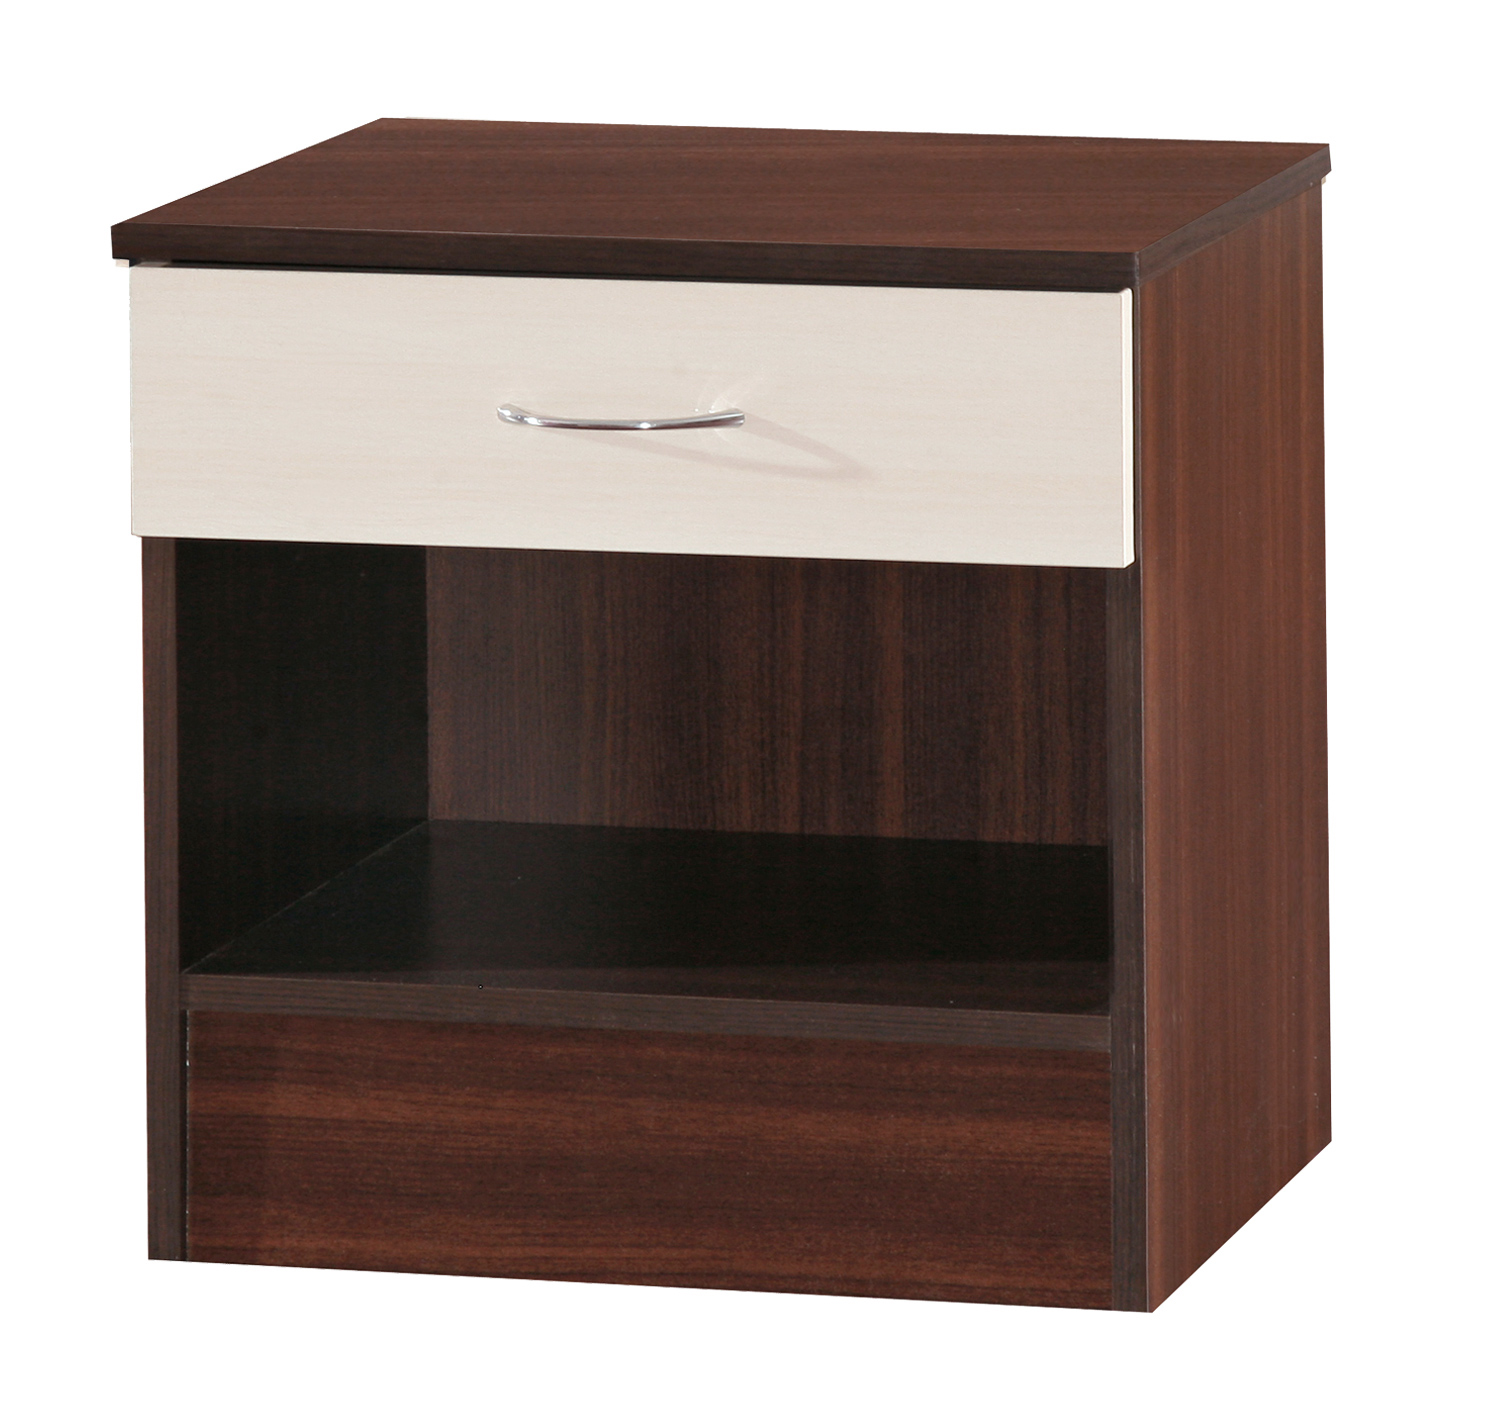 Picture of Alpha 1 Drawer Bedside Cabinet